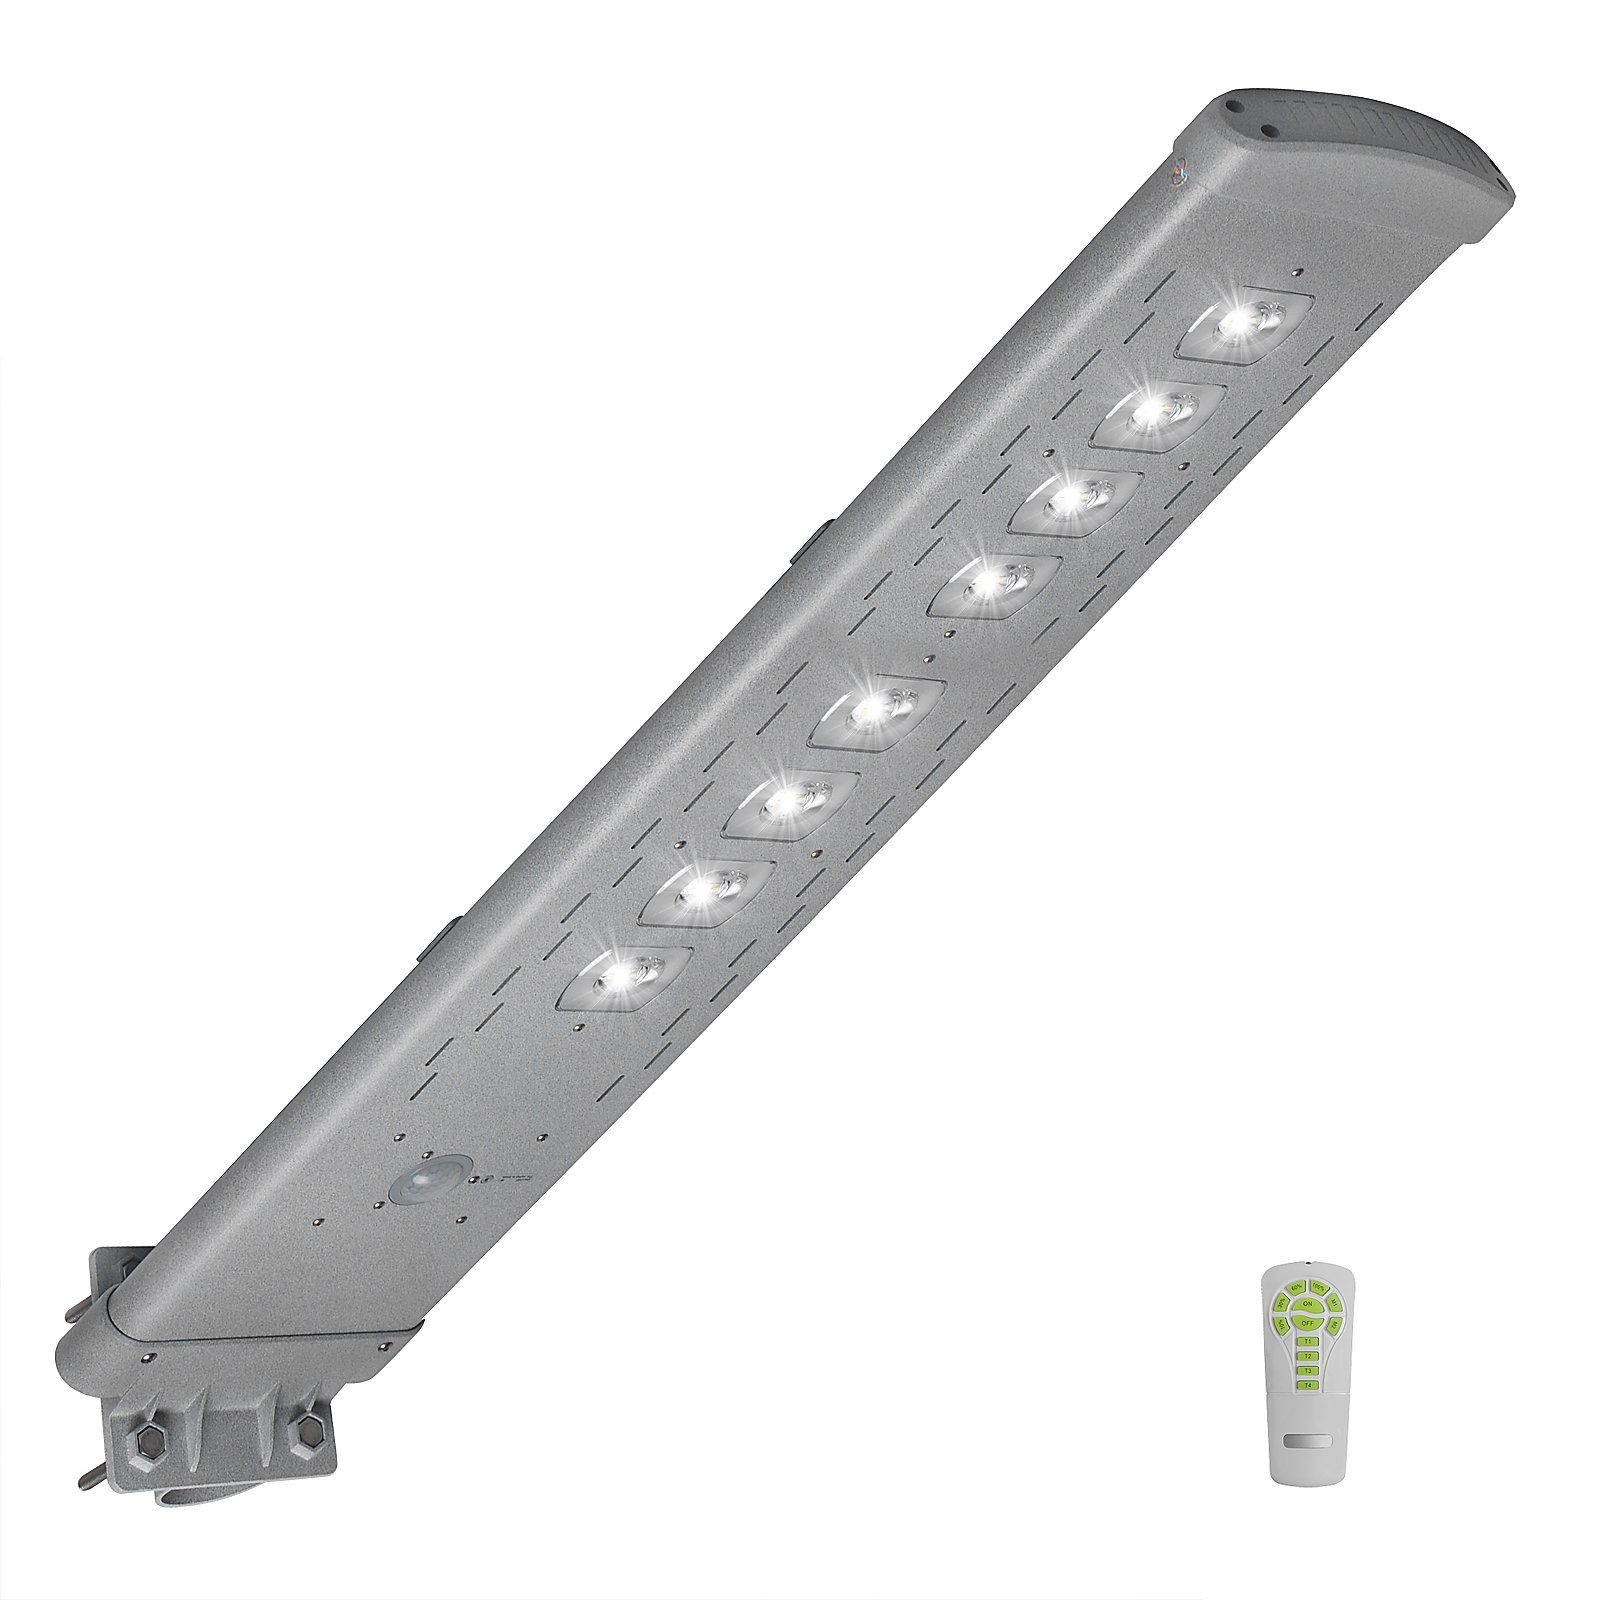 GBGS 4,500LM Commercial Solar Street Light Outdoor IP65 with Remote All in One Post Area Lighting Dusk to Dawn PIR Motion Sensor Mounted Garden Lamp (Product Size: 42.18.75.9inch, 80 LEDs, 6500K, )